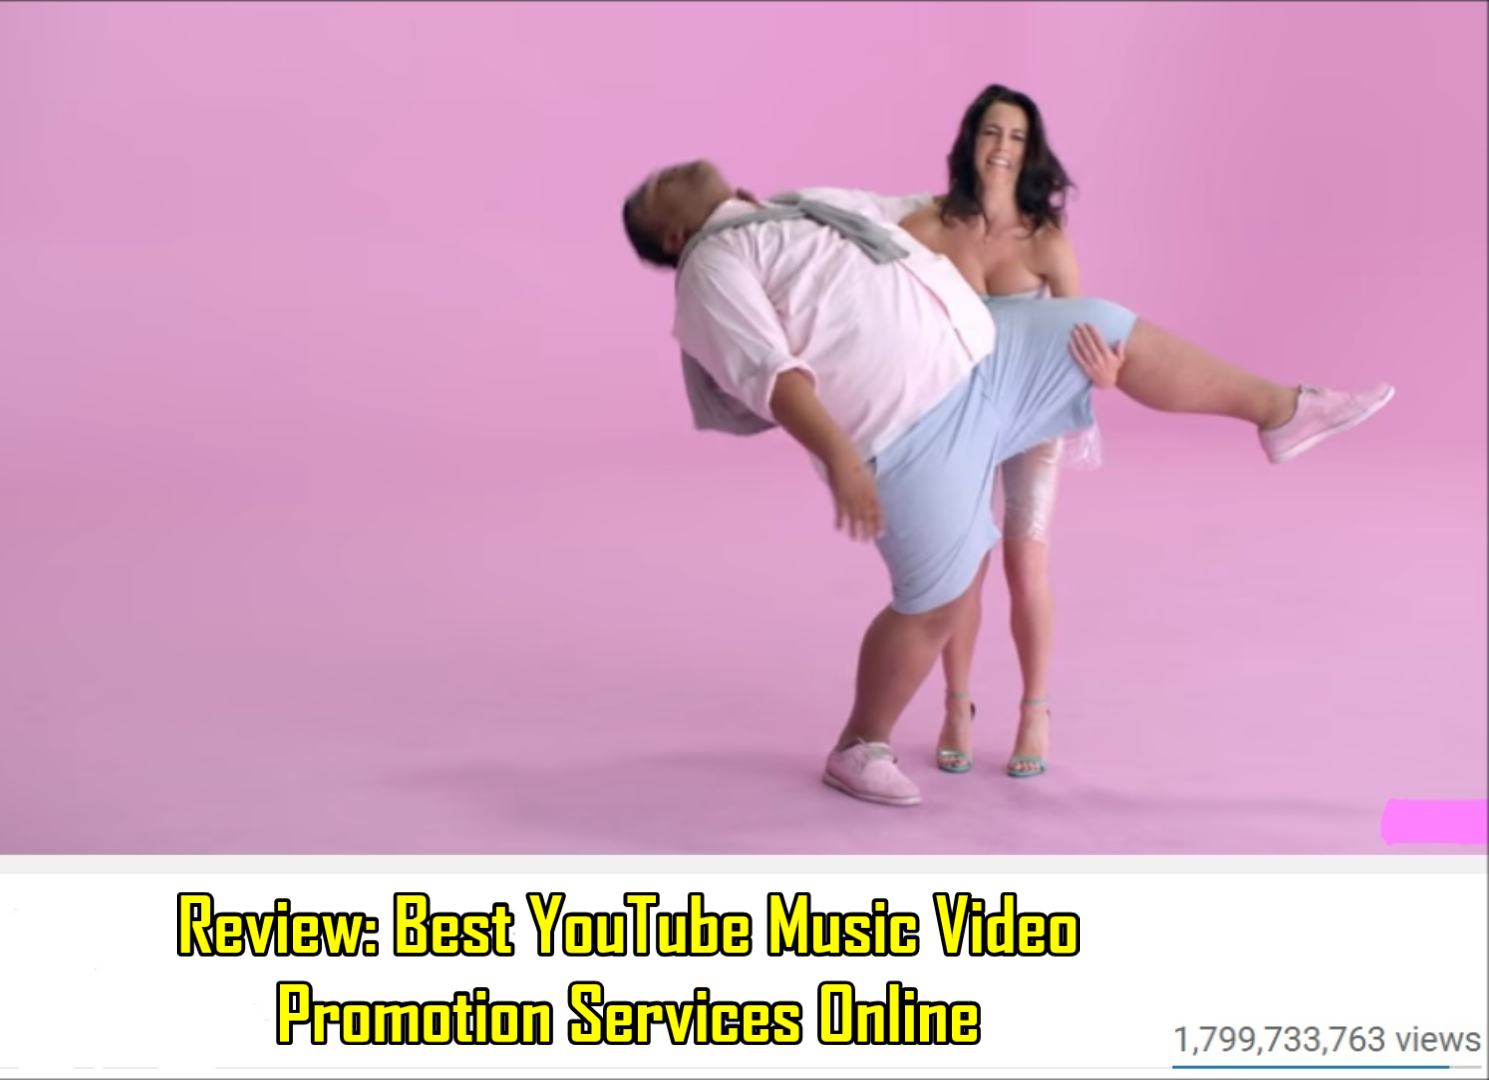 Best YouTube Music Video Promotion Services Online